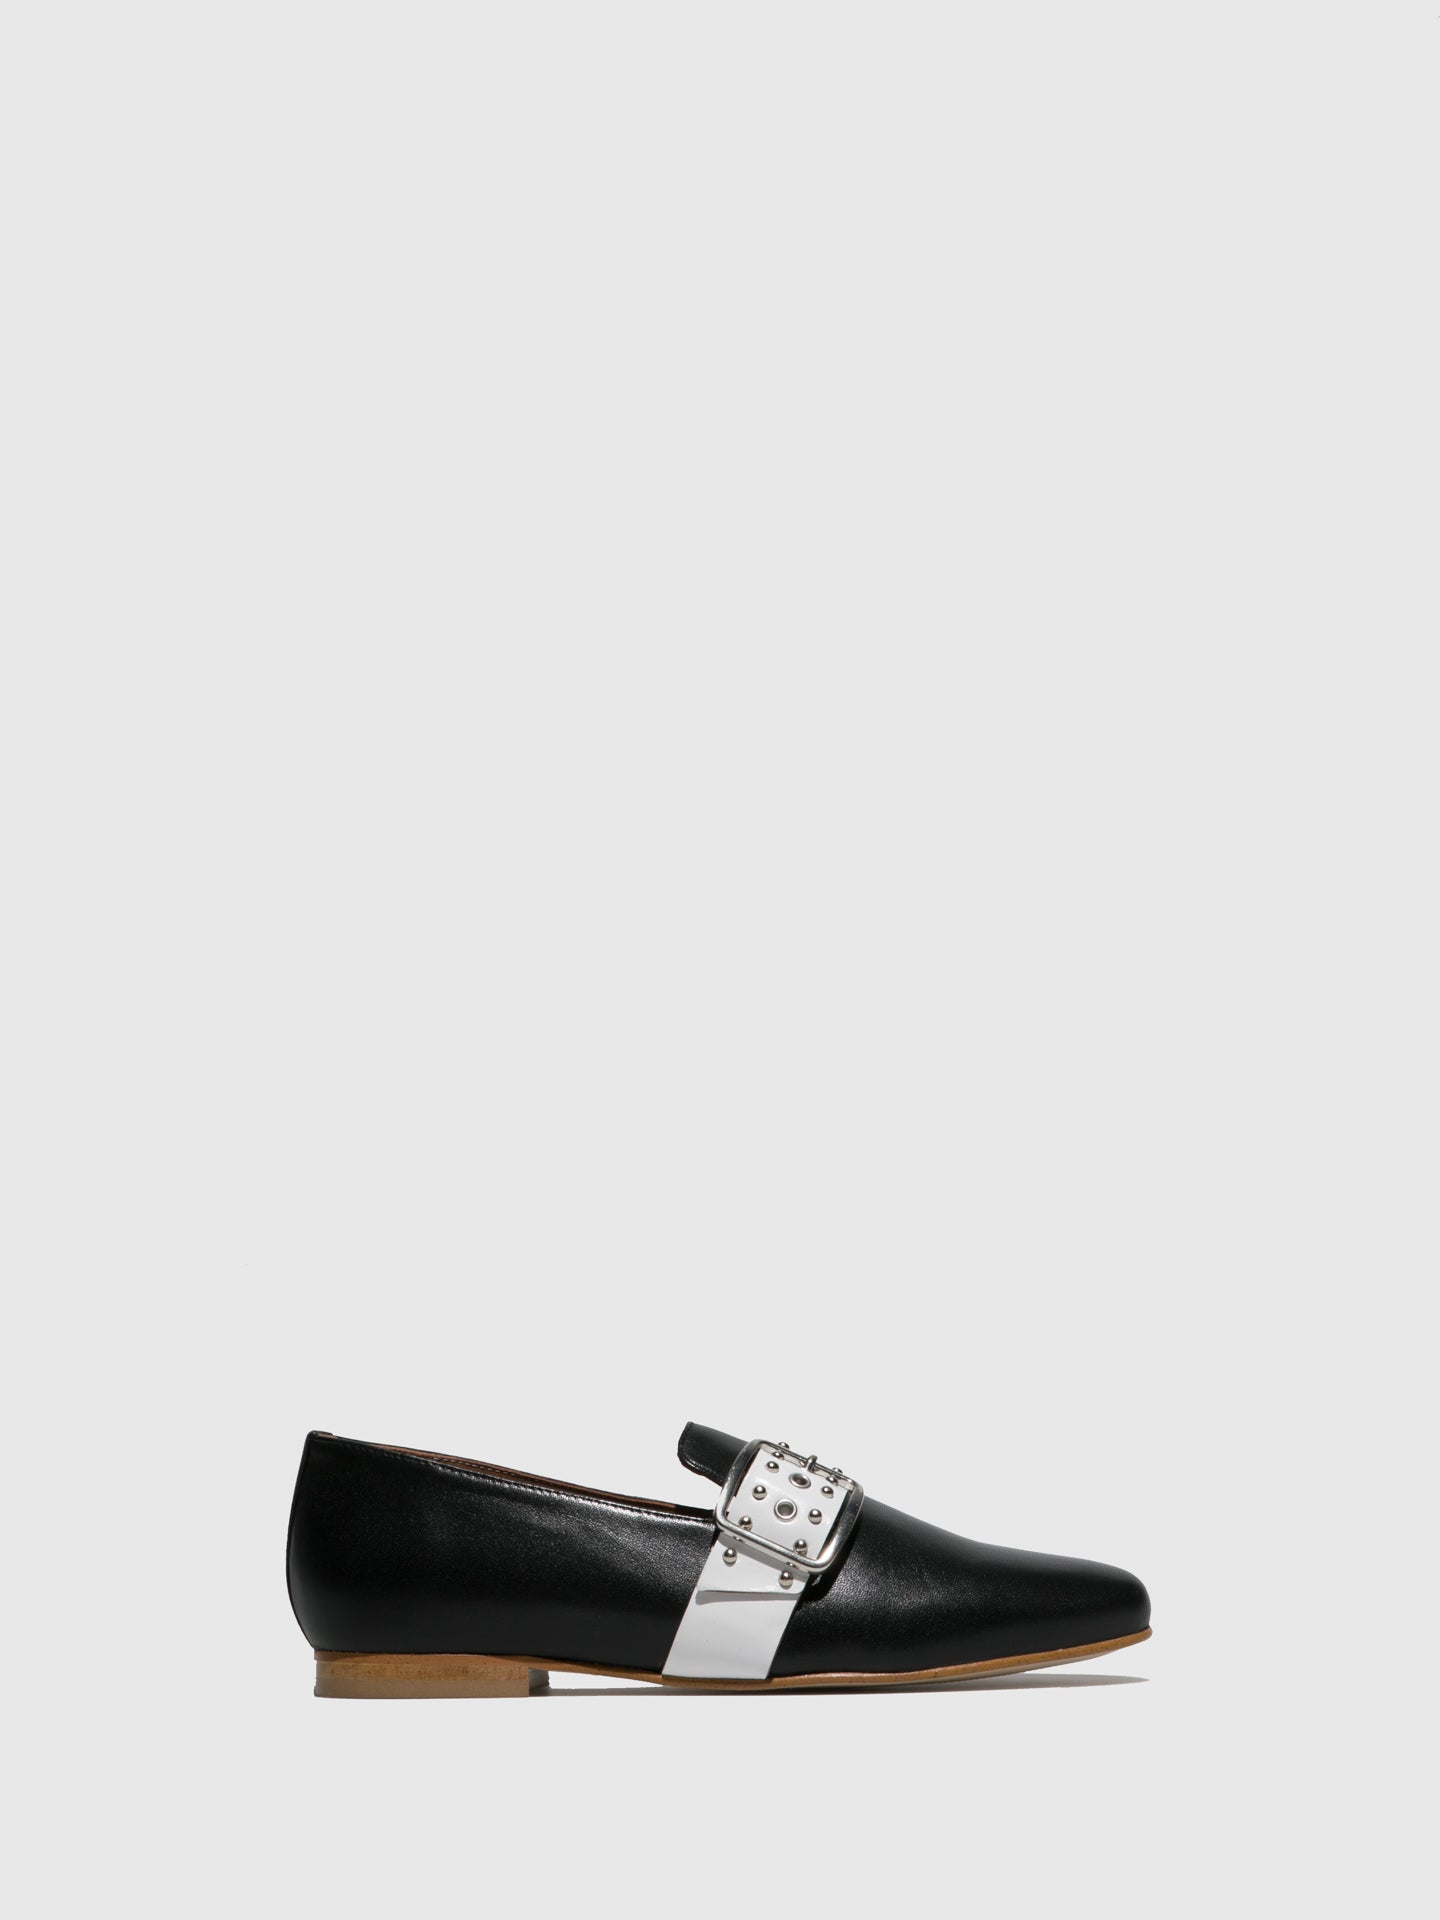 JJ Heitor Black Loafers Shoes